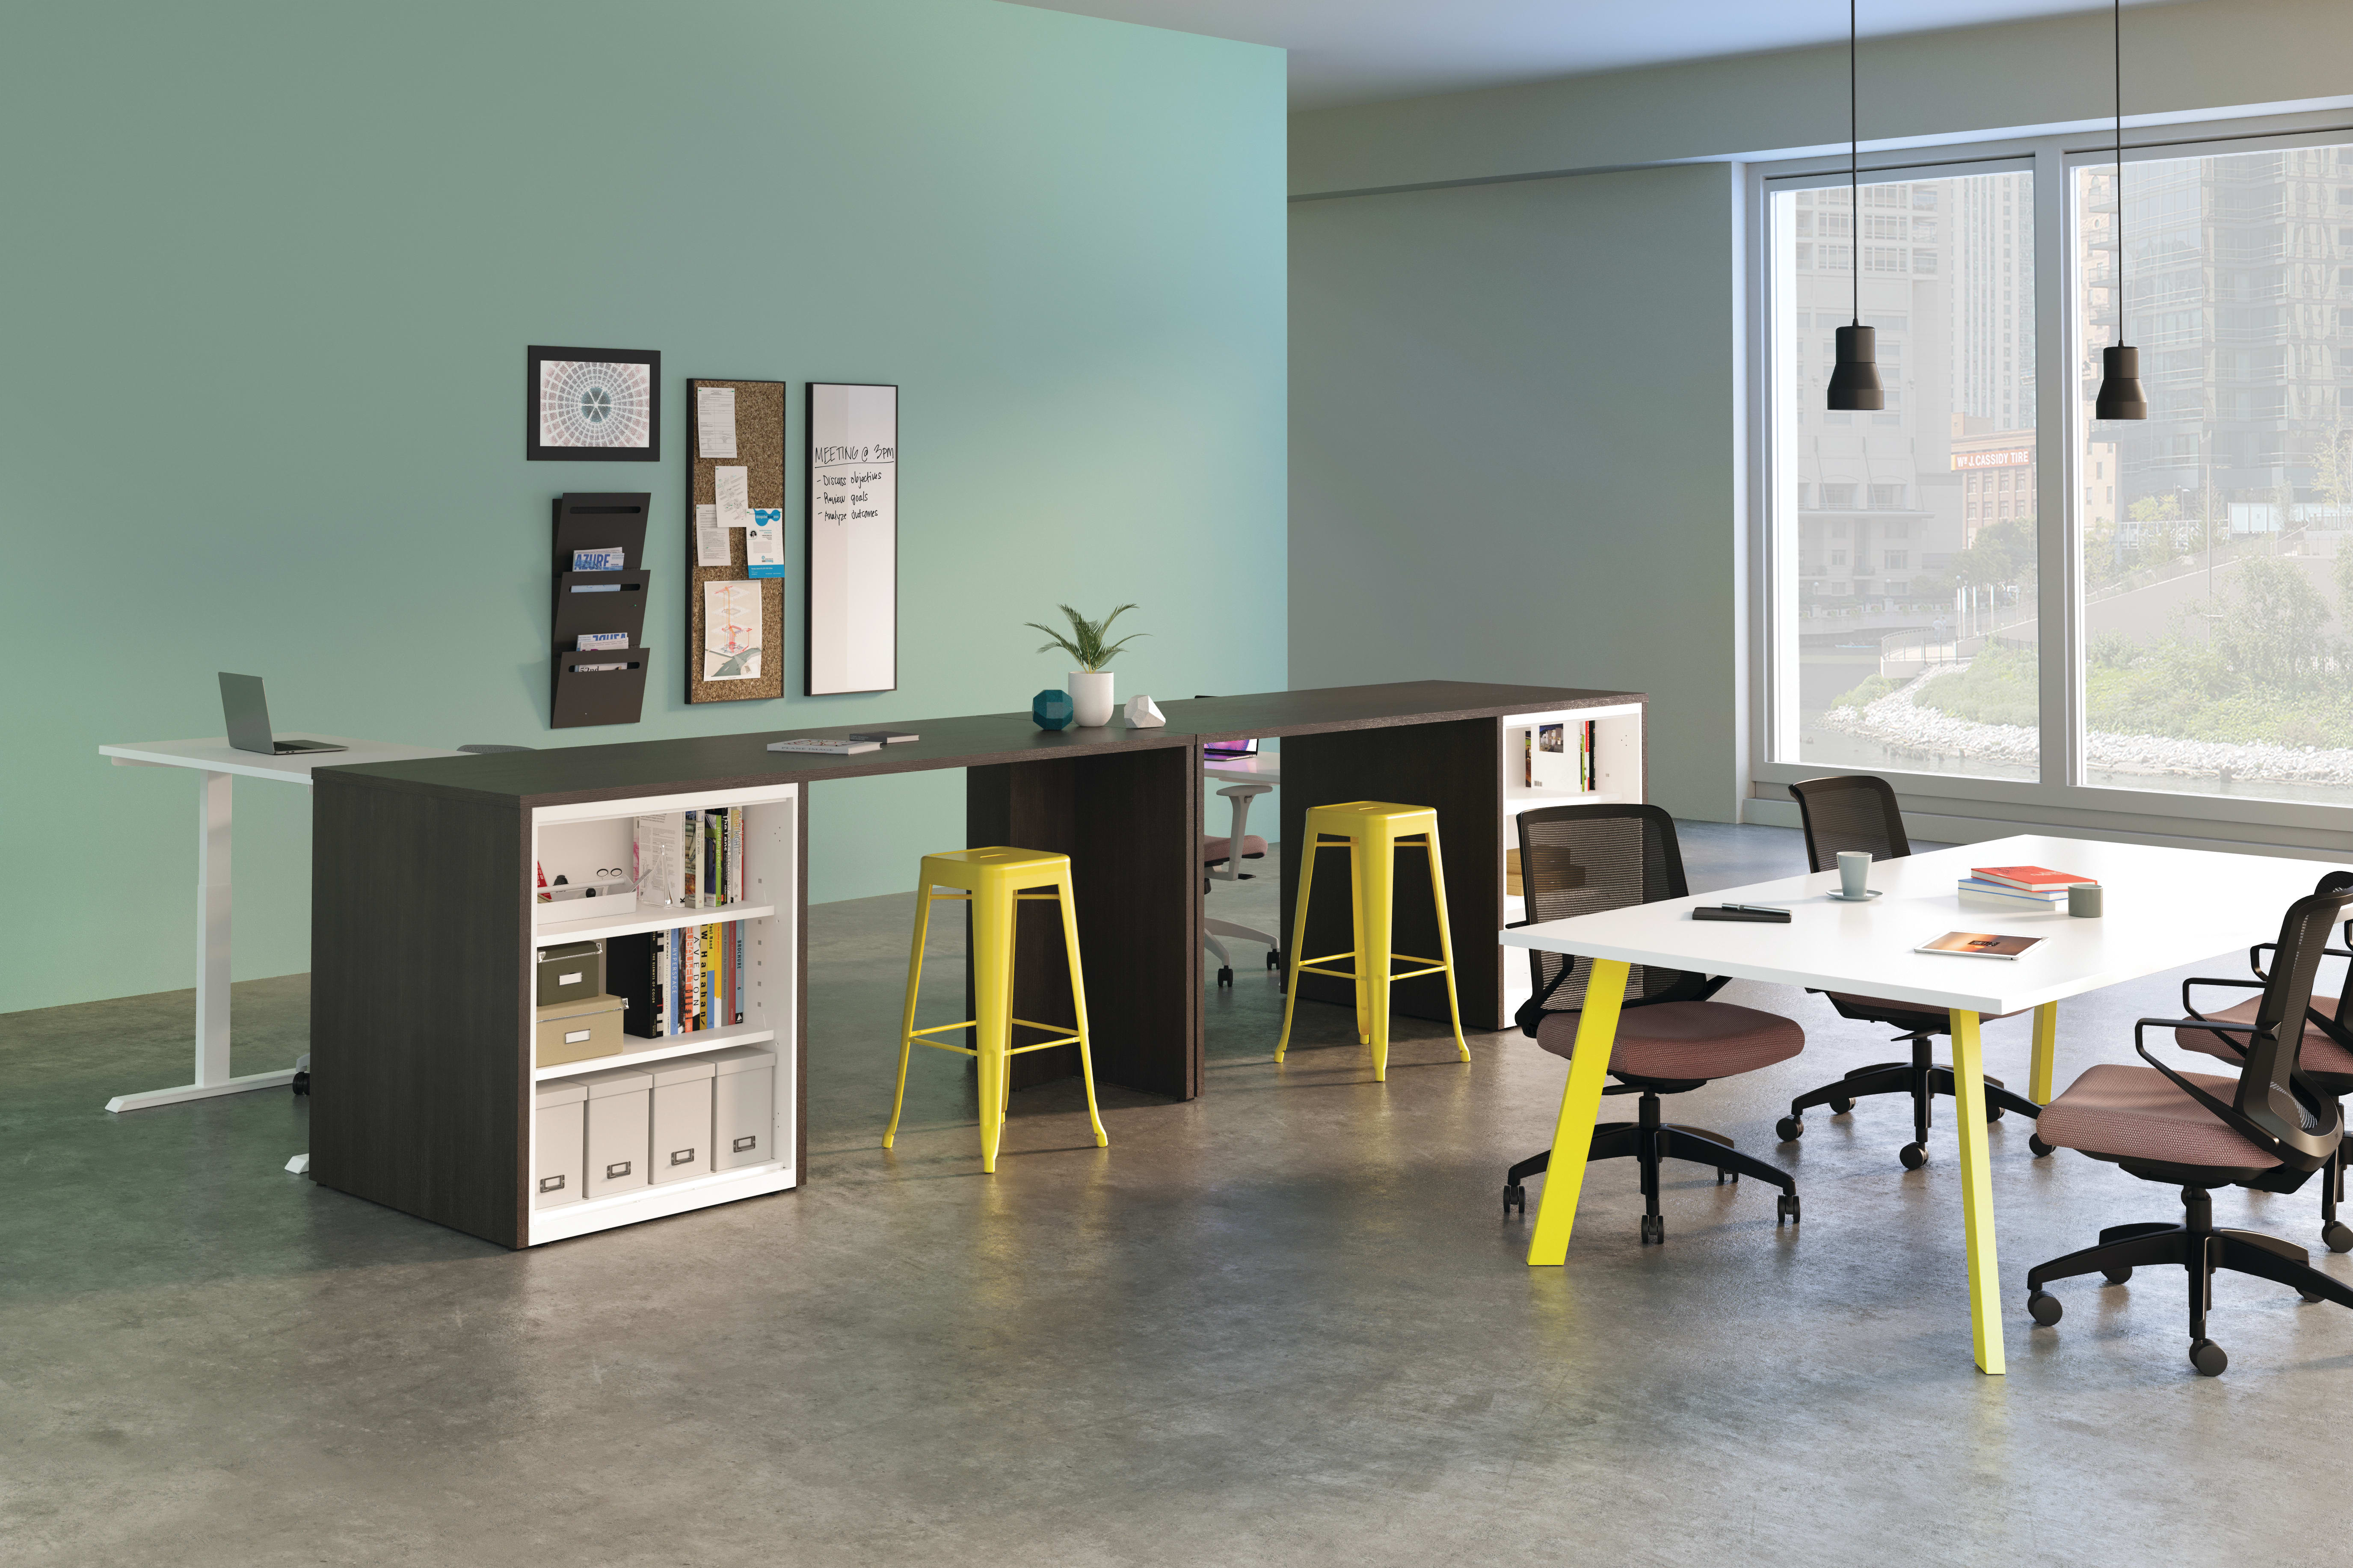 Build Stools, Cliq Task Chairs, Preside Conference Table, Storage Islands with Contain Storage and Coordinate Height Adjustable Desk.